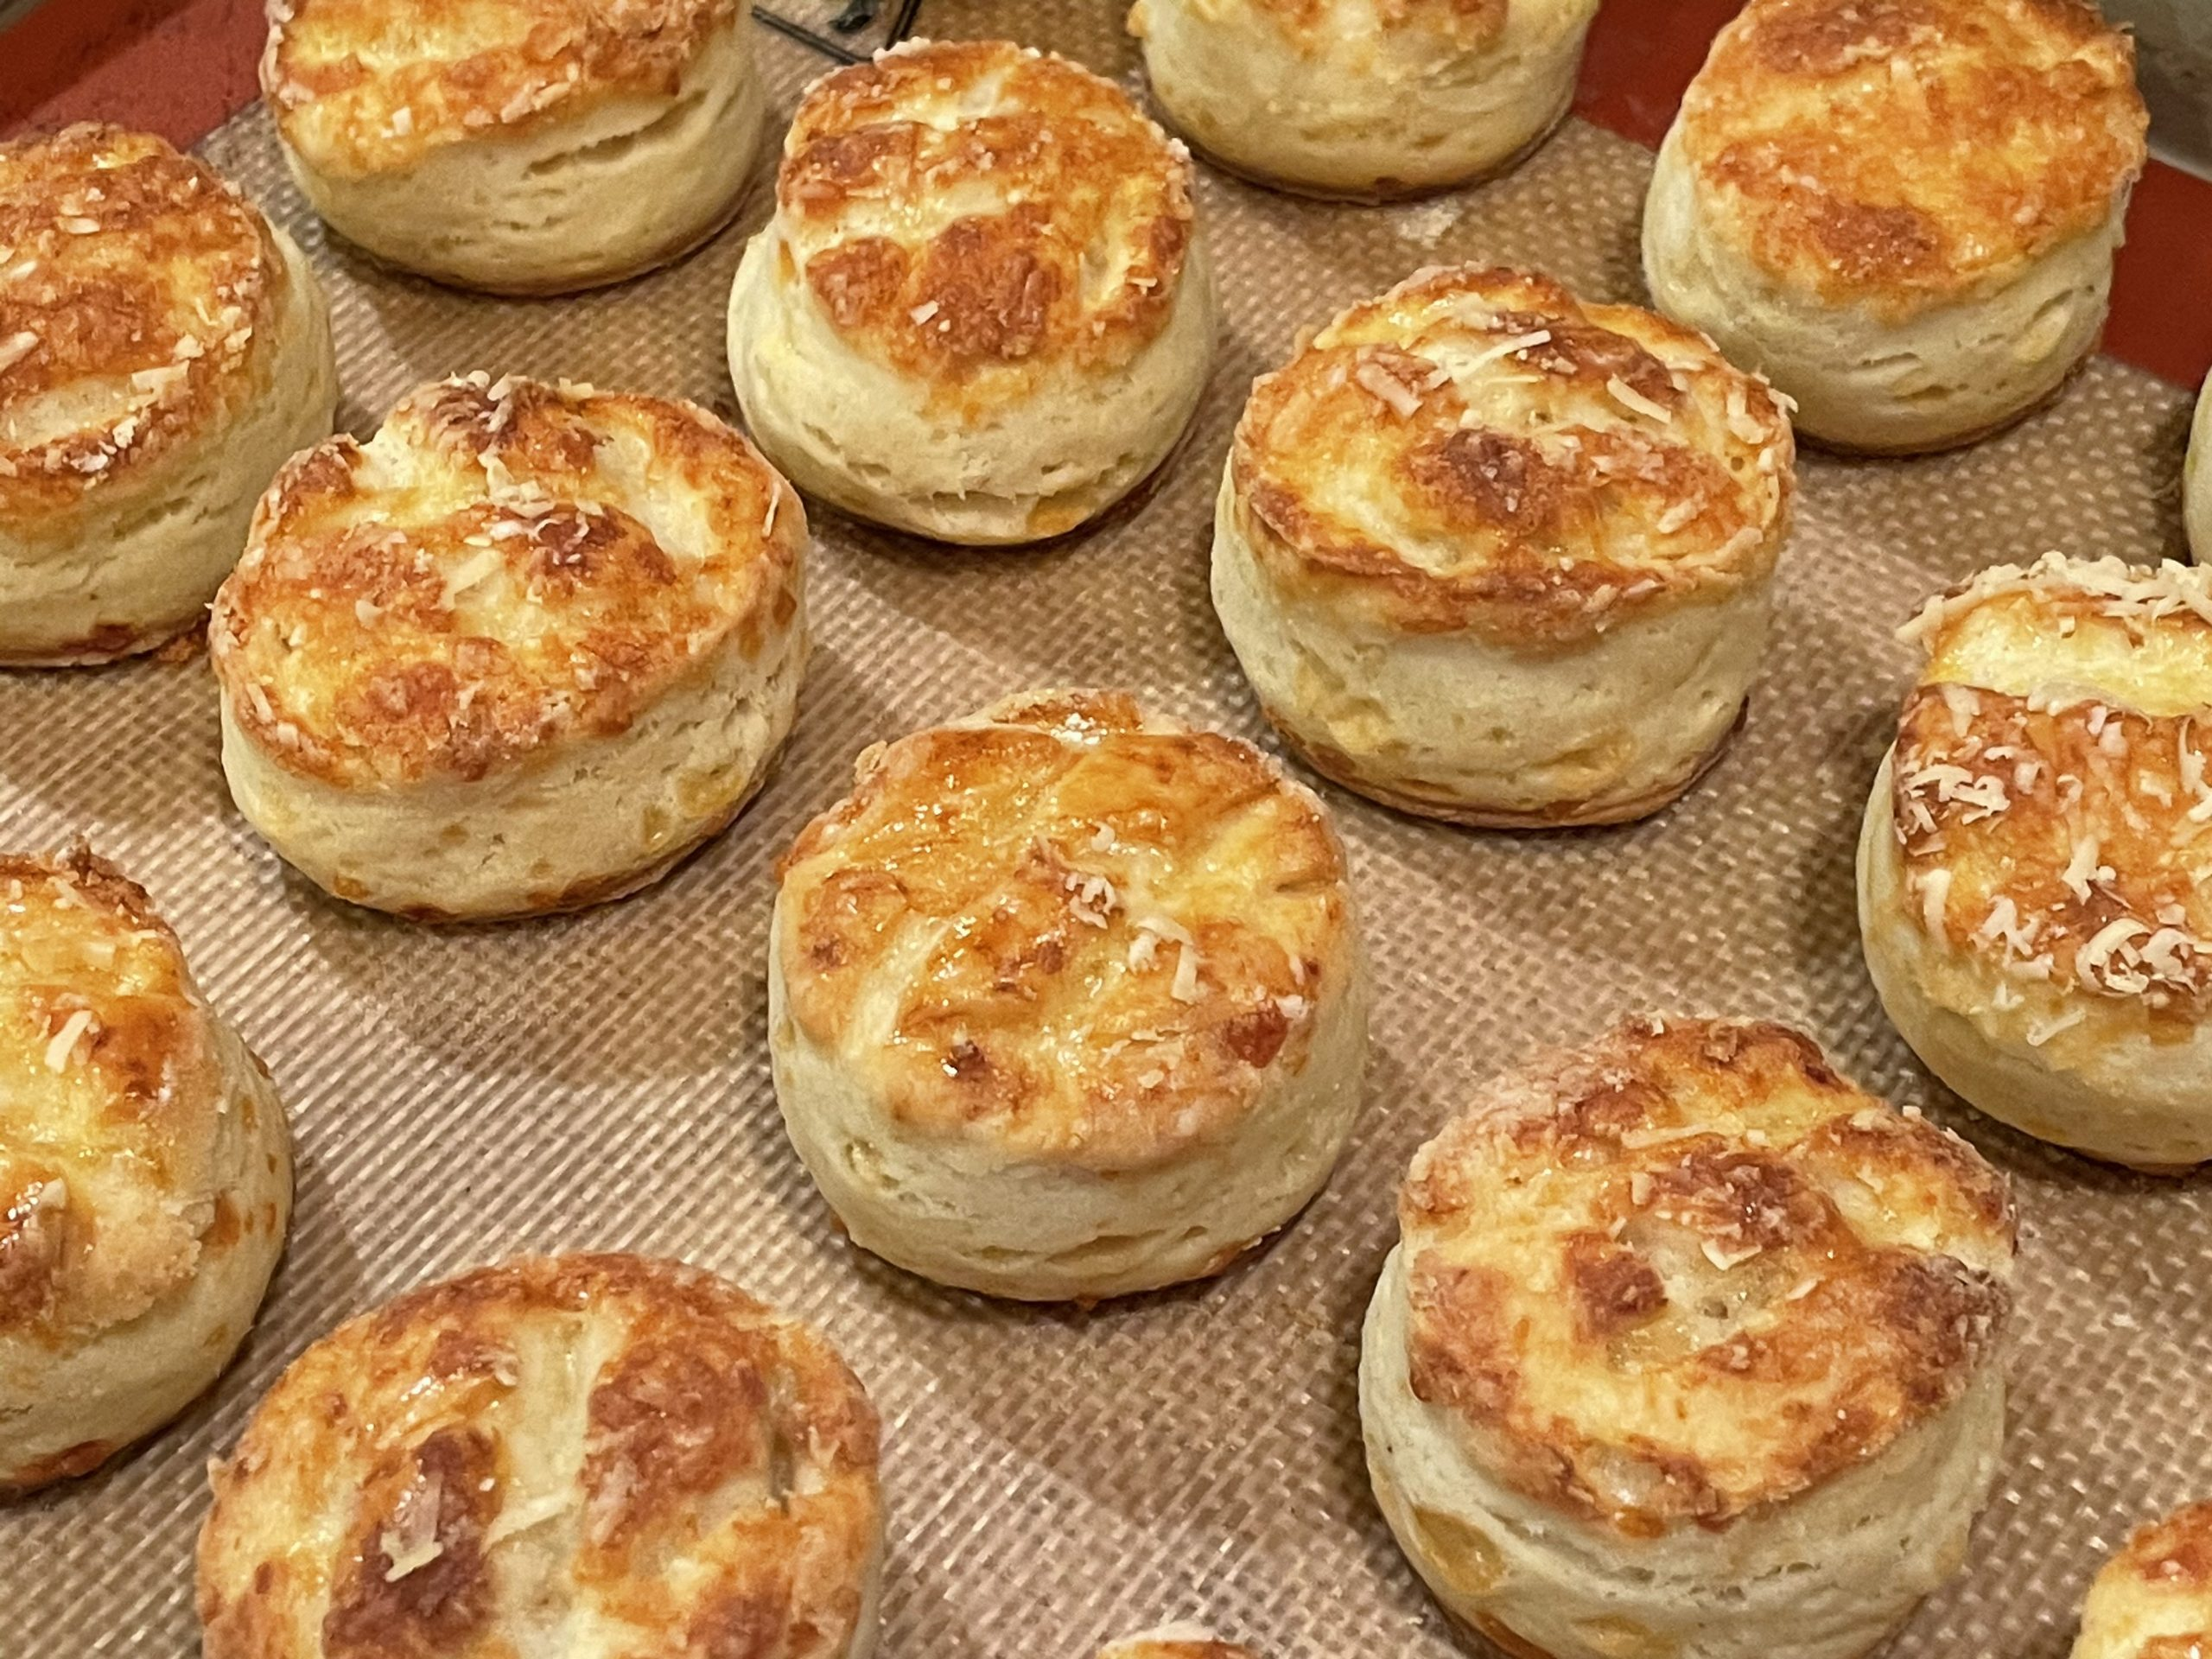 Cheese biscuits on baking sheet. Greg Patent